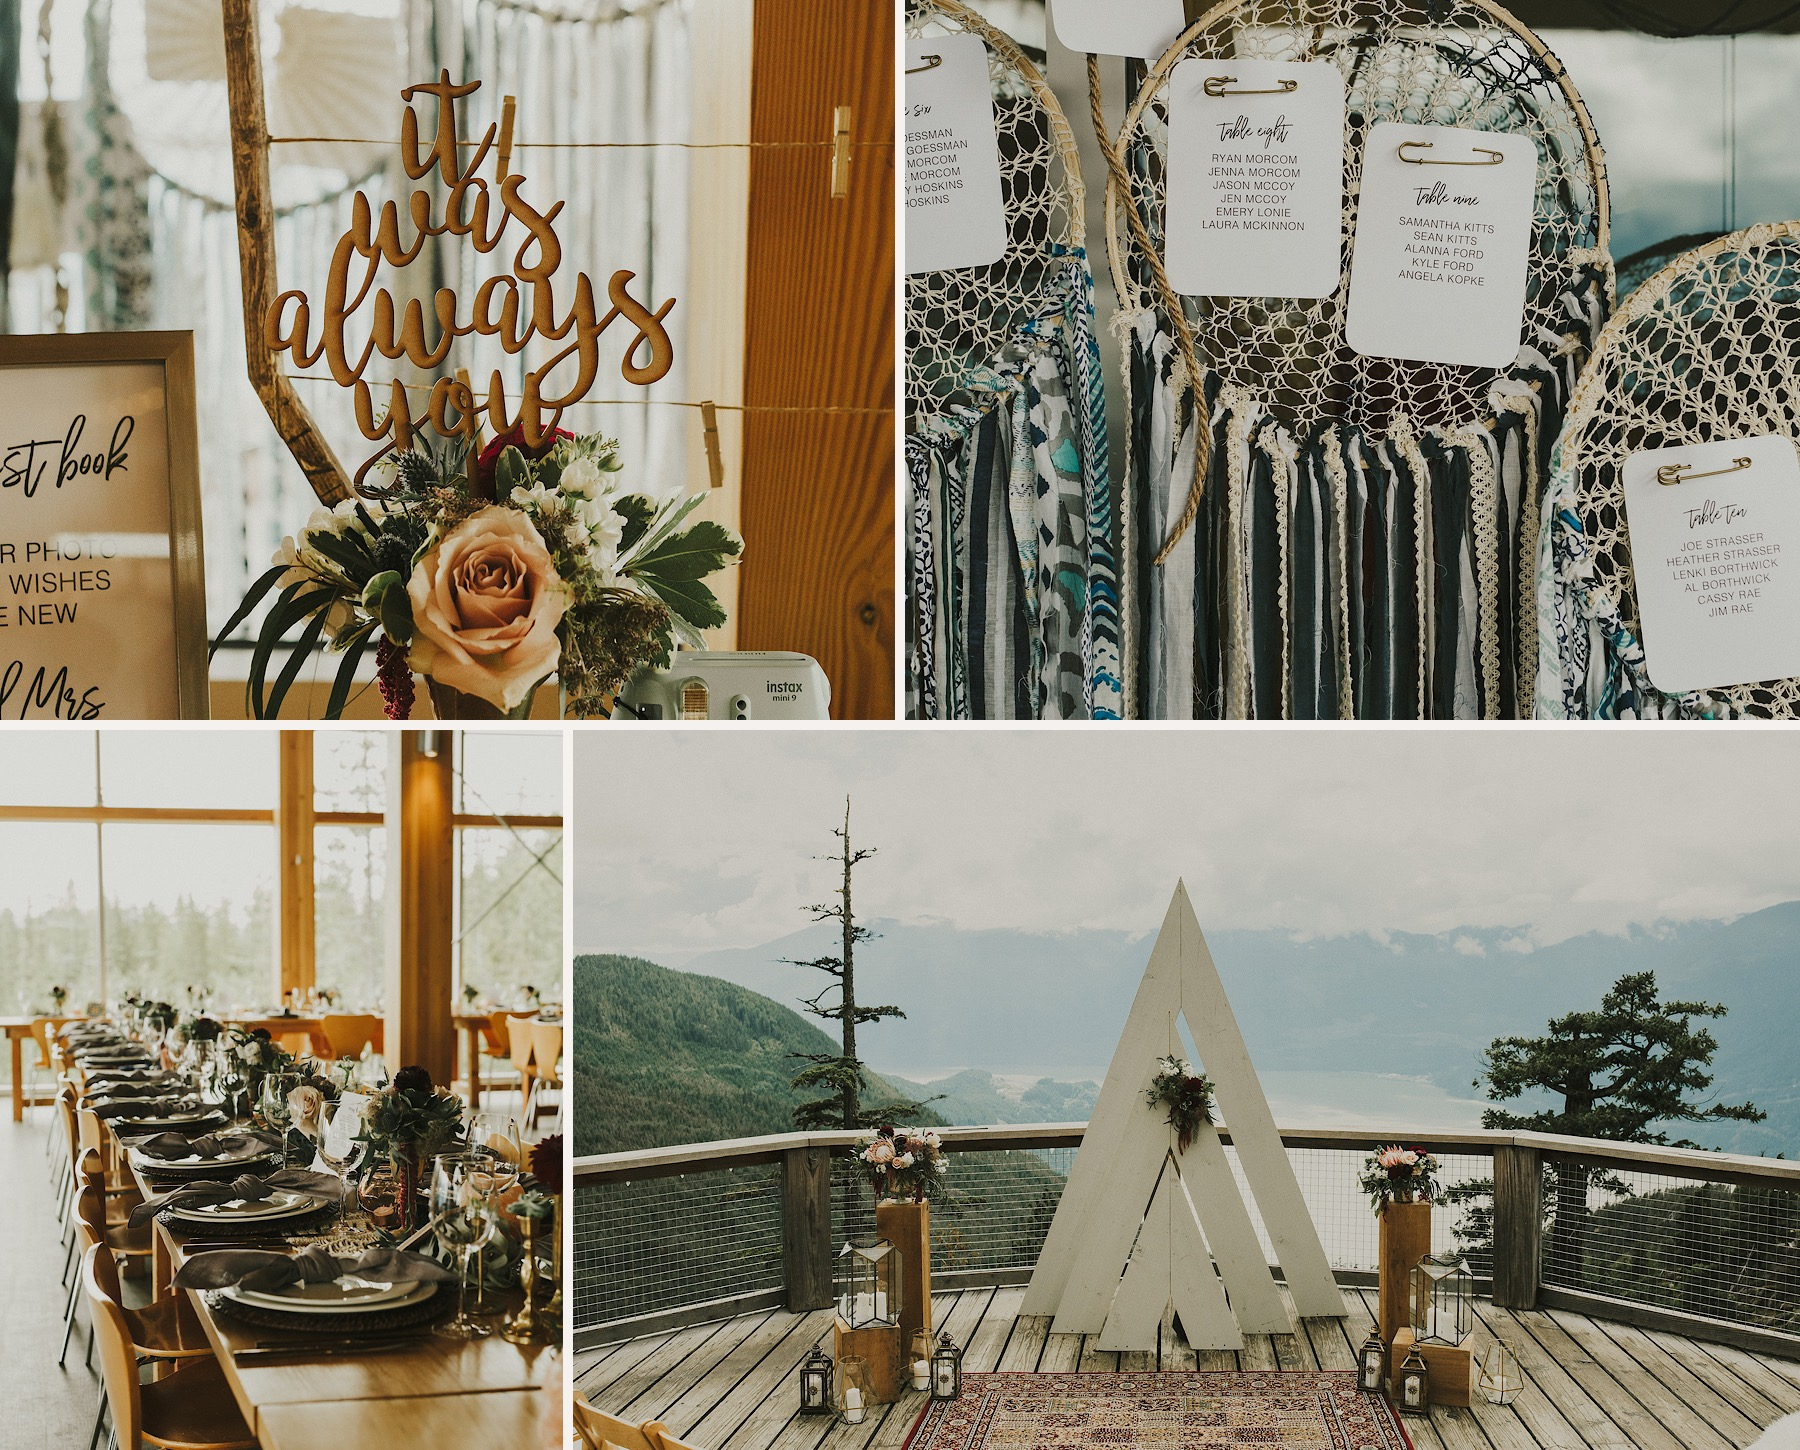 A Sea to Sky Gondola Squamish summer wedding pnw